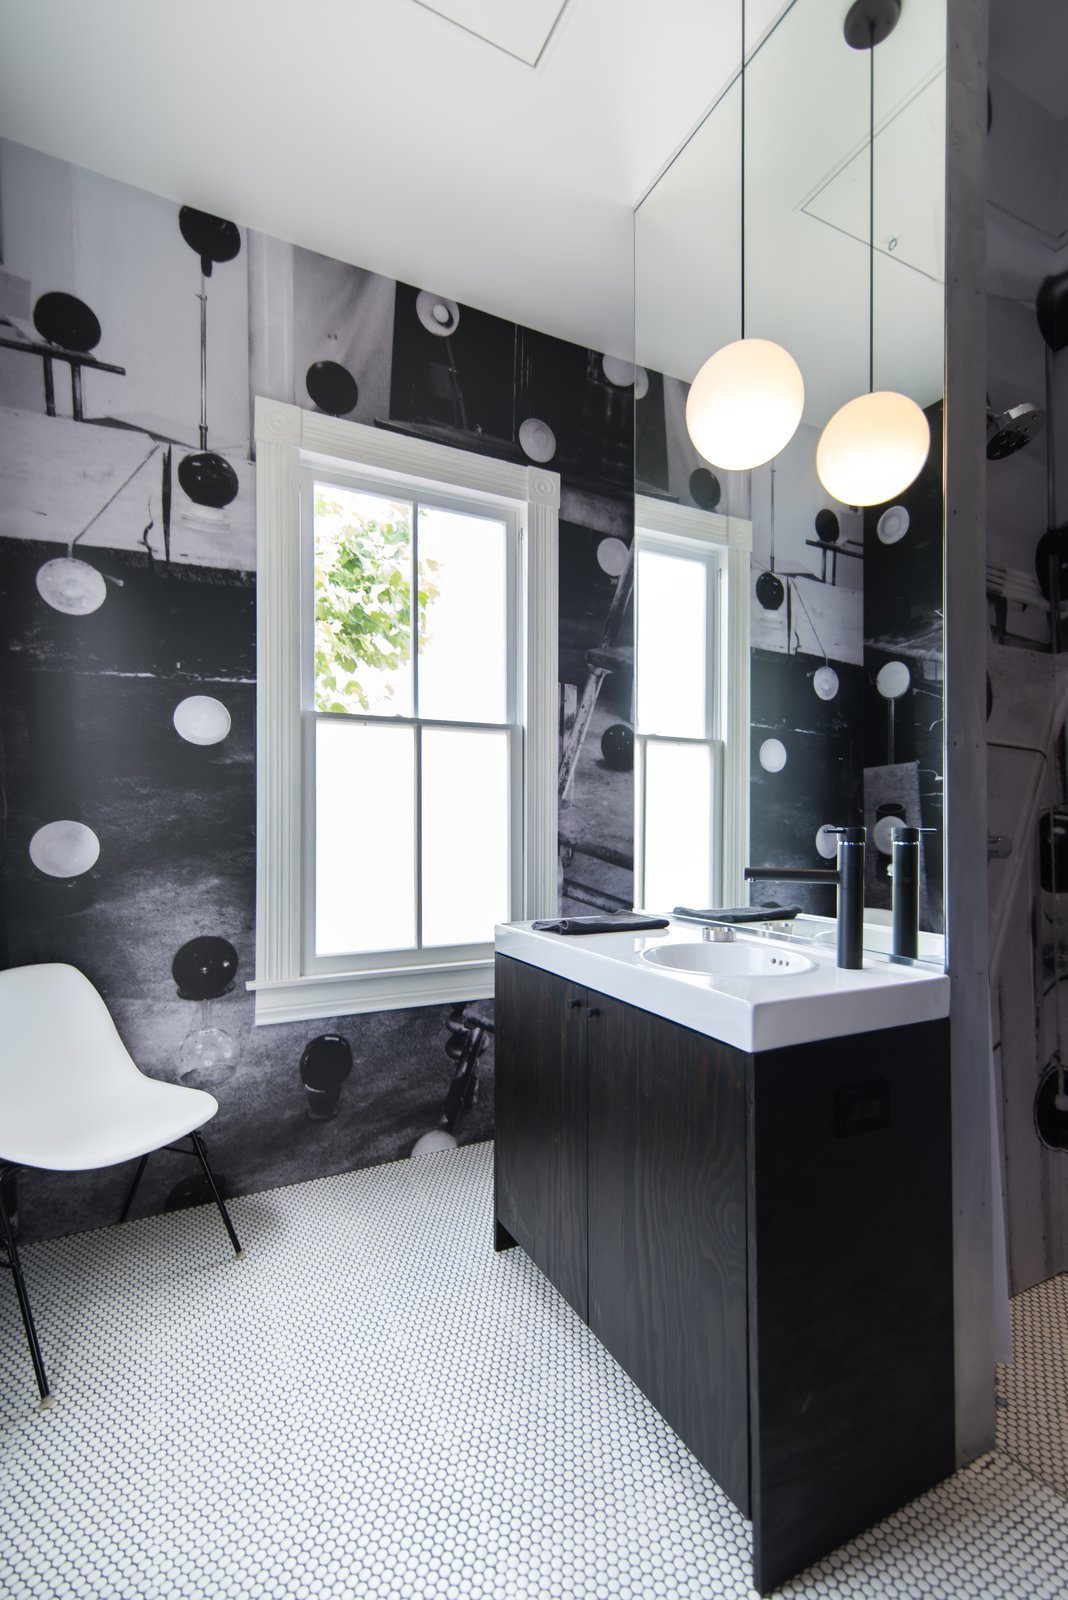 Bath Room, Ceramic Tile Floor, Accent Lighting, and Pendant Lighting  Photo 13 of 14 in A Victorian Cottage in Houston Finds New Life as a Local Firm's Office